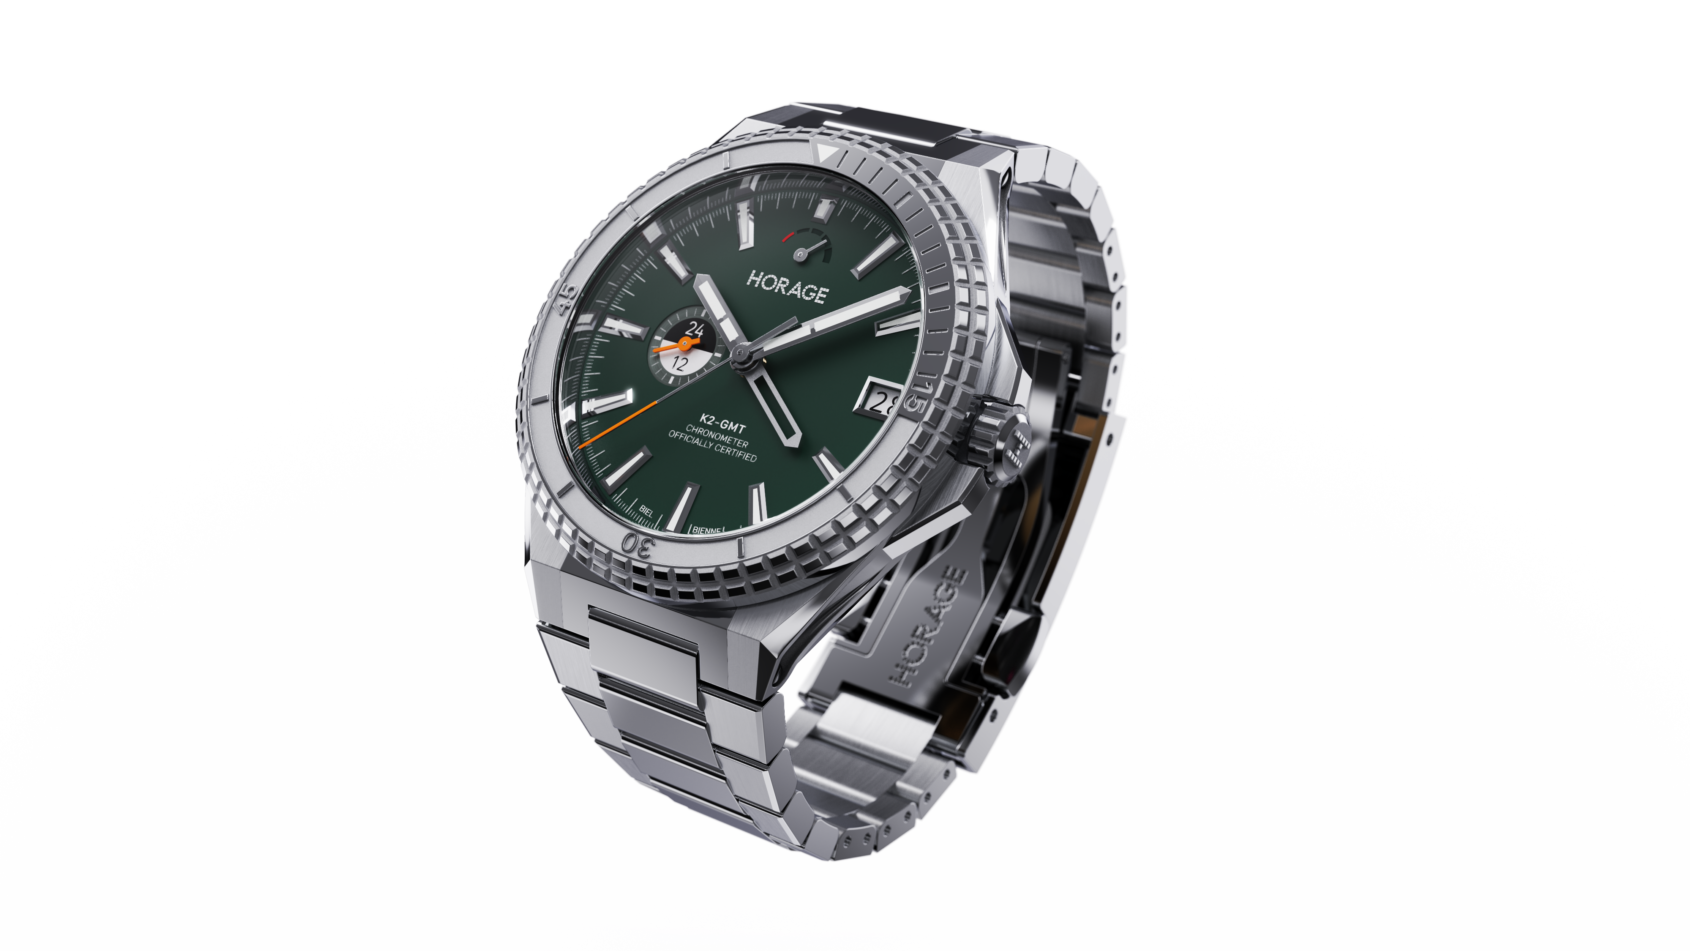 INTRODUCING: The Horage Supersede aims to deliver unprecedented value with new K2 micro-rotor GMT caliber